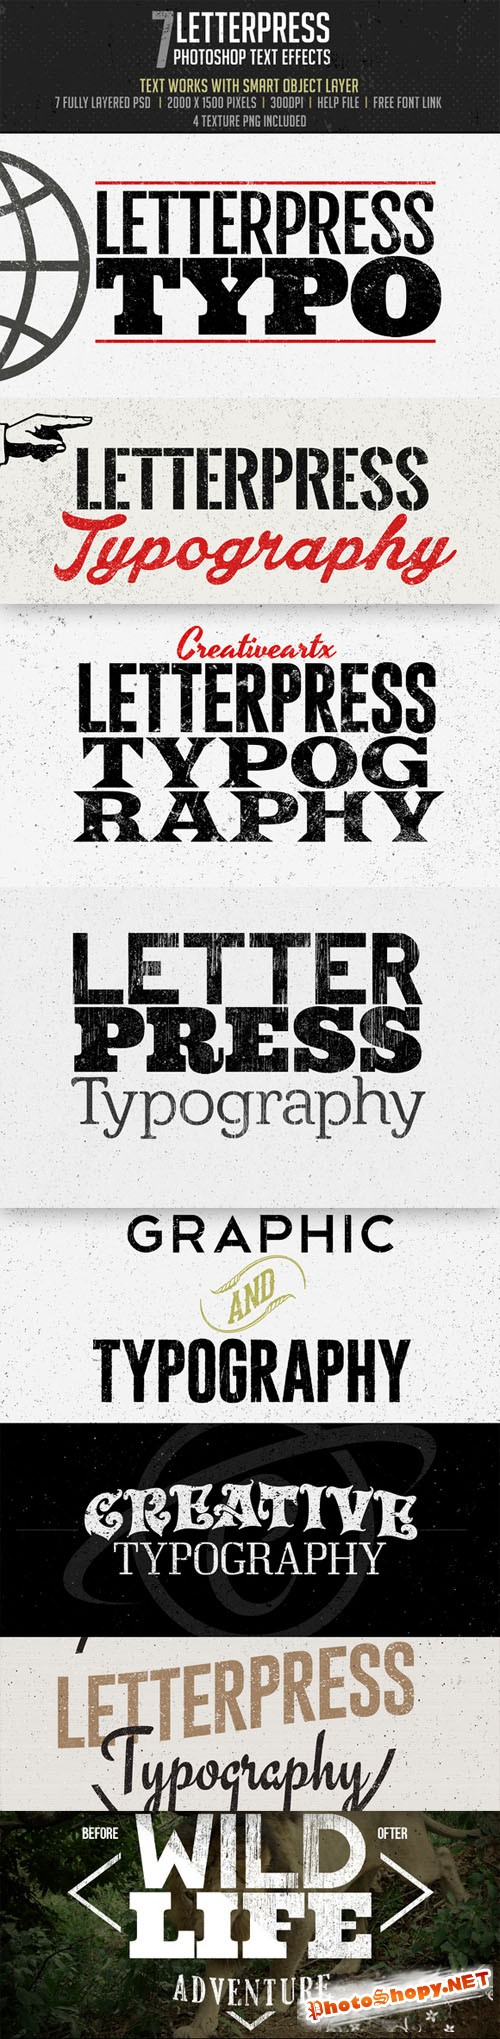 CreativeMarket - Letterpress -Photoshop Effects